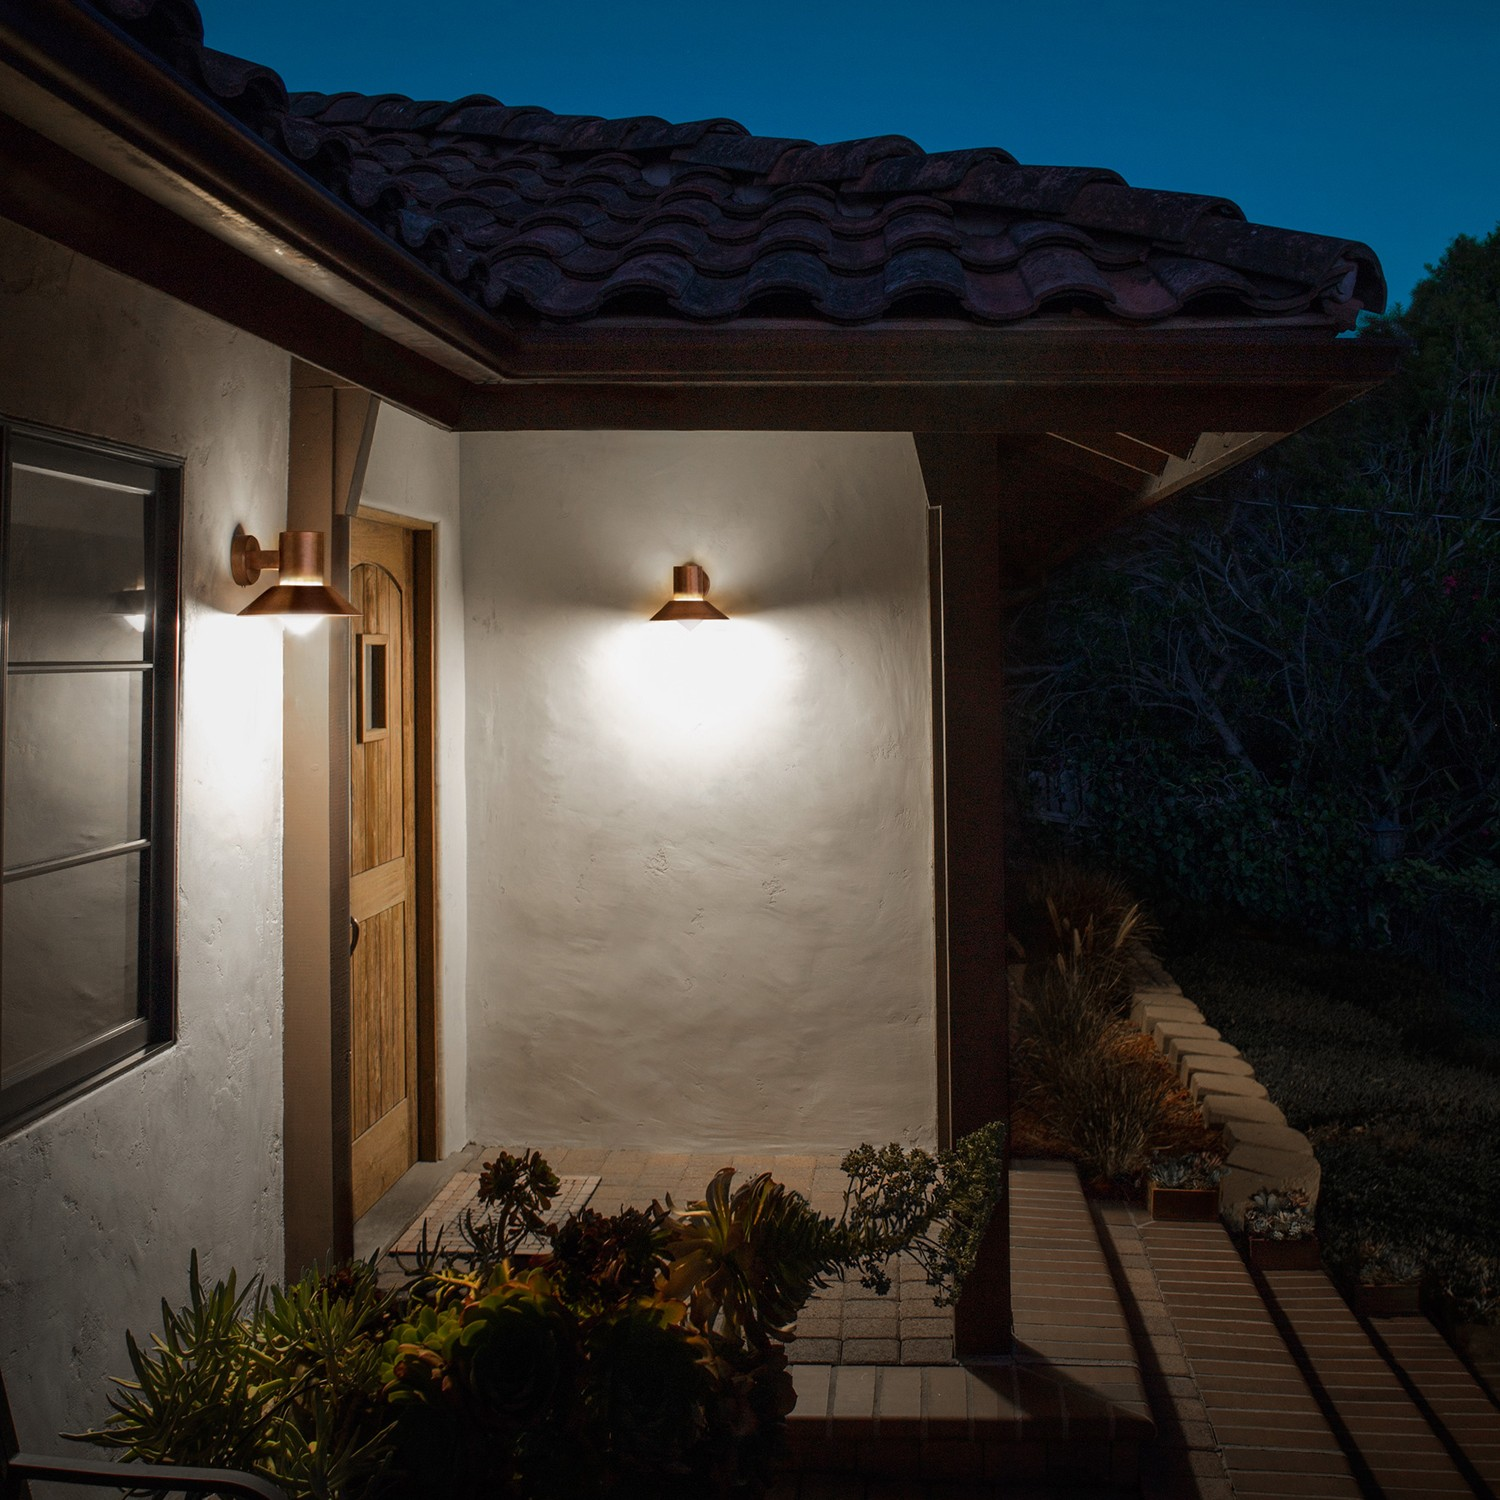 Small Battery Operated Porch Lights